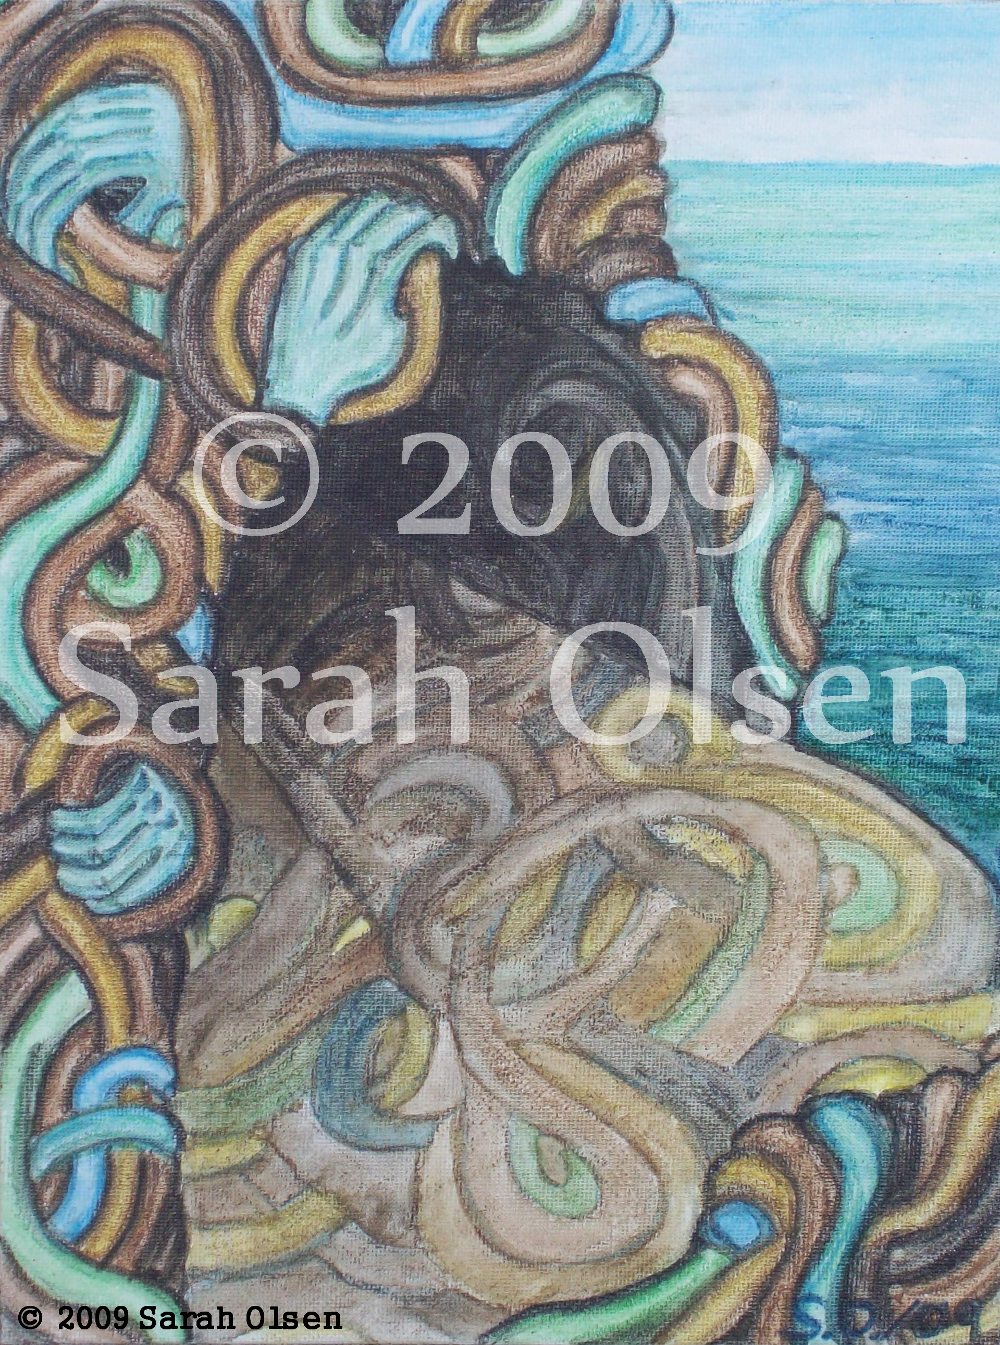 In this image a cave of woven bands and turquoise hands lies by the sea. The interwoven bands are earth and sea coloured.